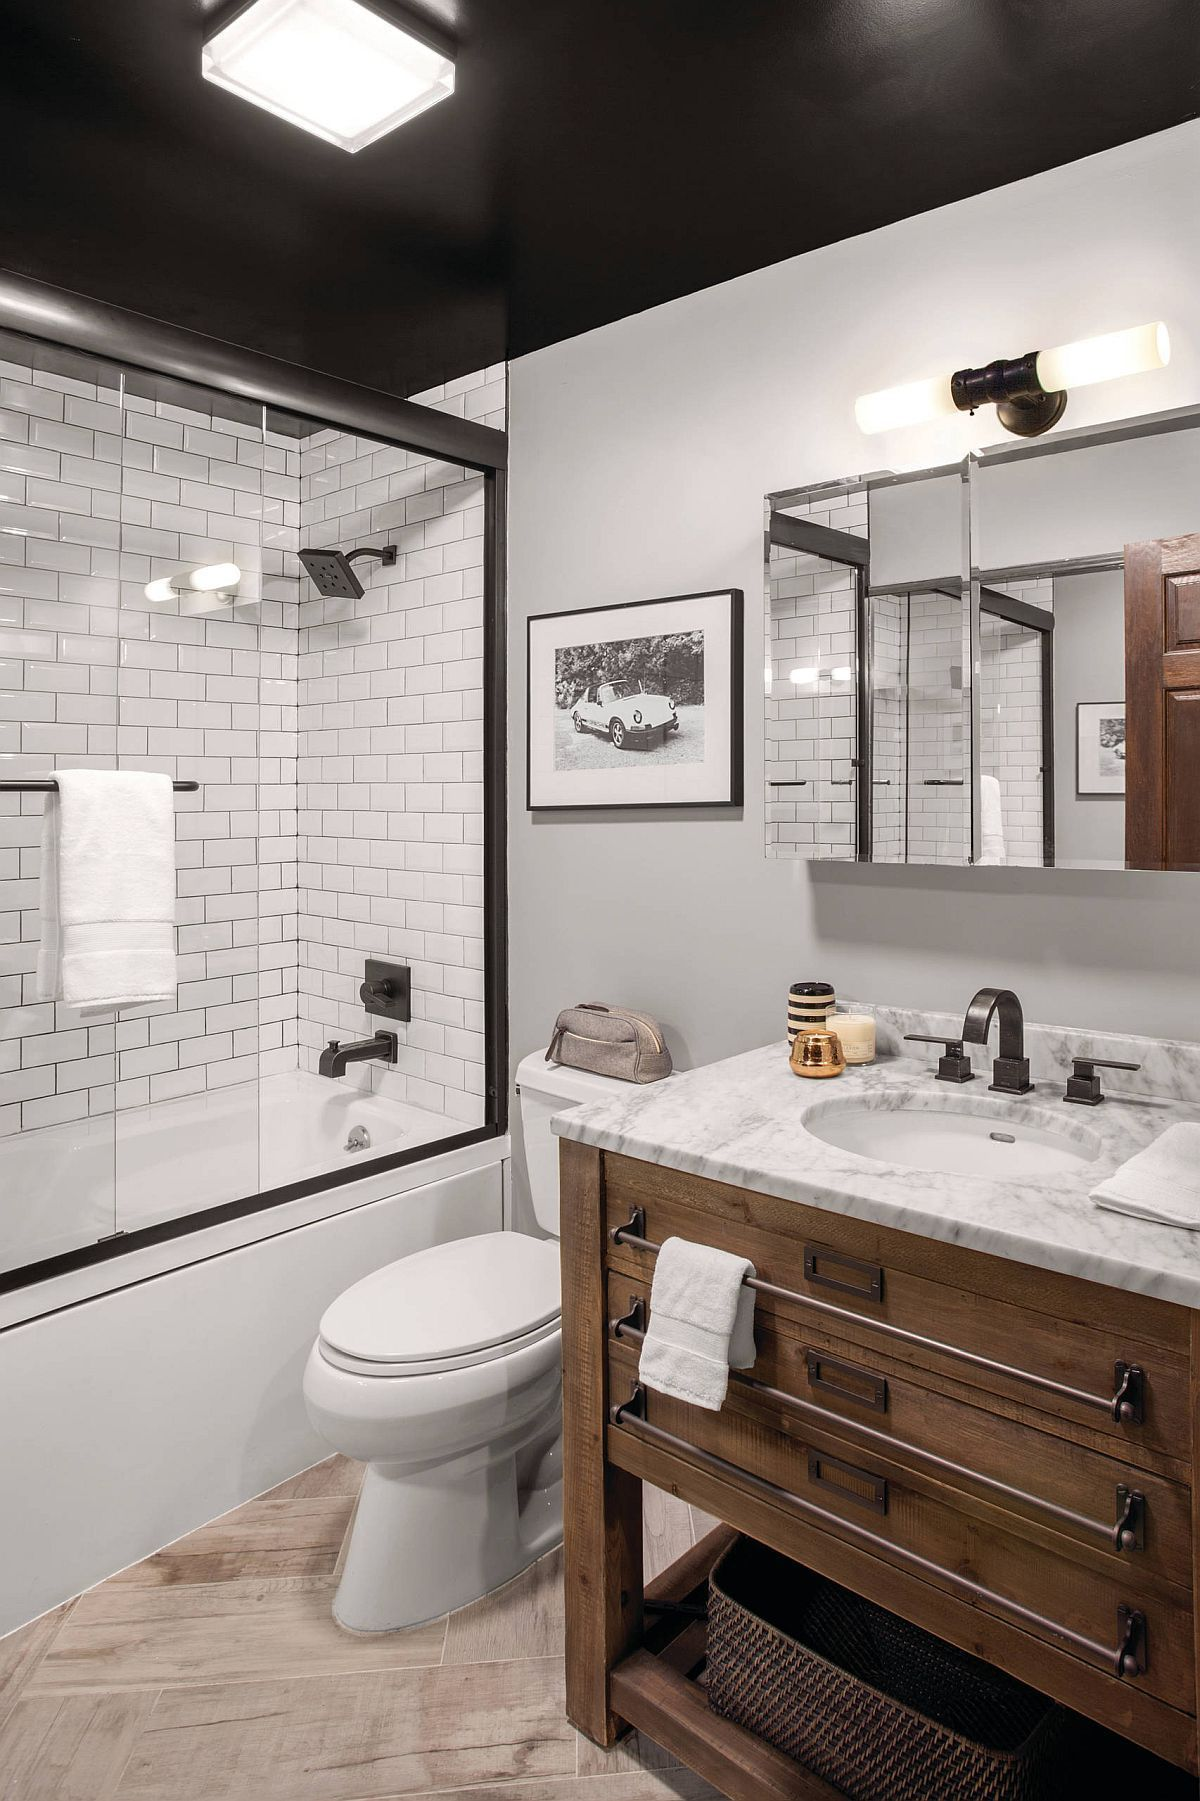 Rustikale Bäder Small Rustic Bathrooms: 15 Great Ideas For Everyone - New Ideas#bathrooms #great...#bathrooms #great #ideas … | Rustikale Bäder, Badezimmer Klein, Doppelwaschbecken